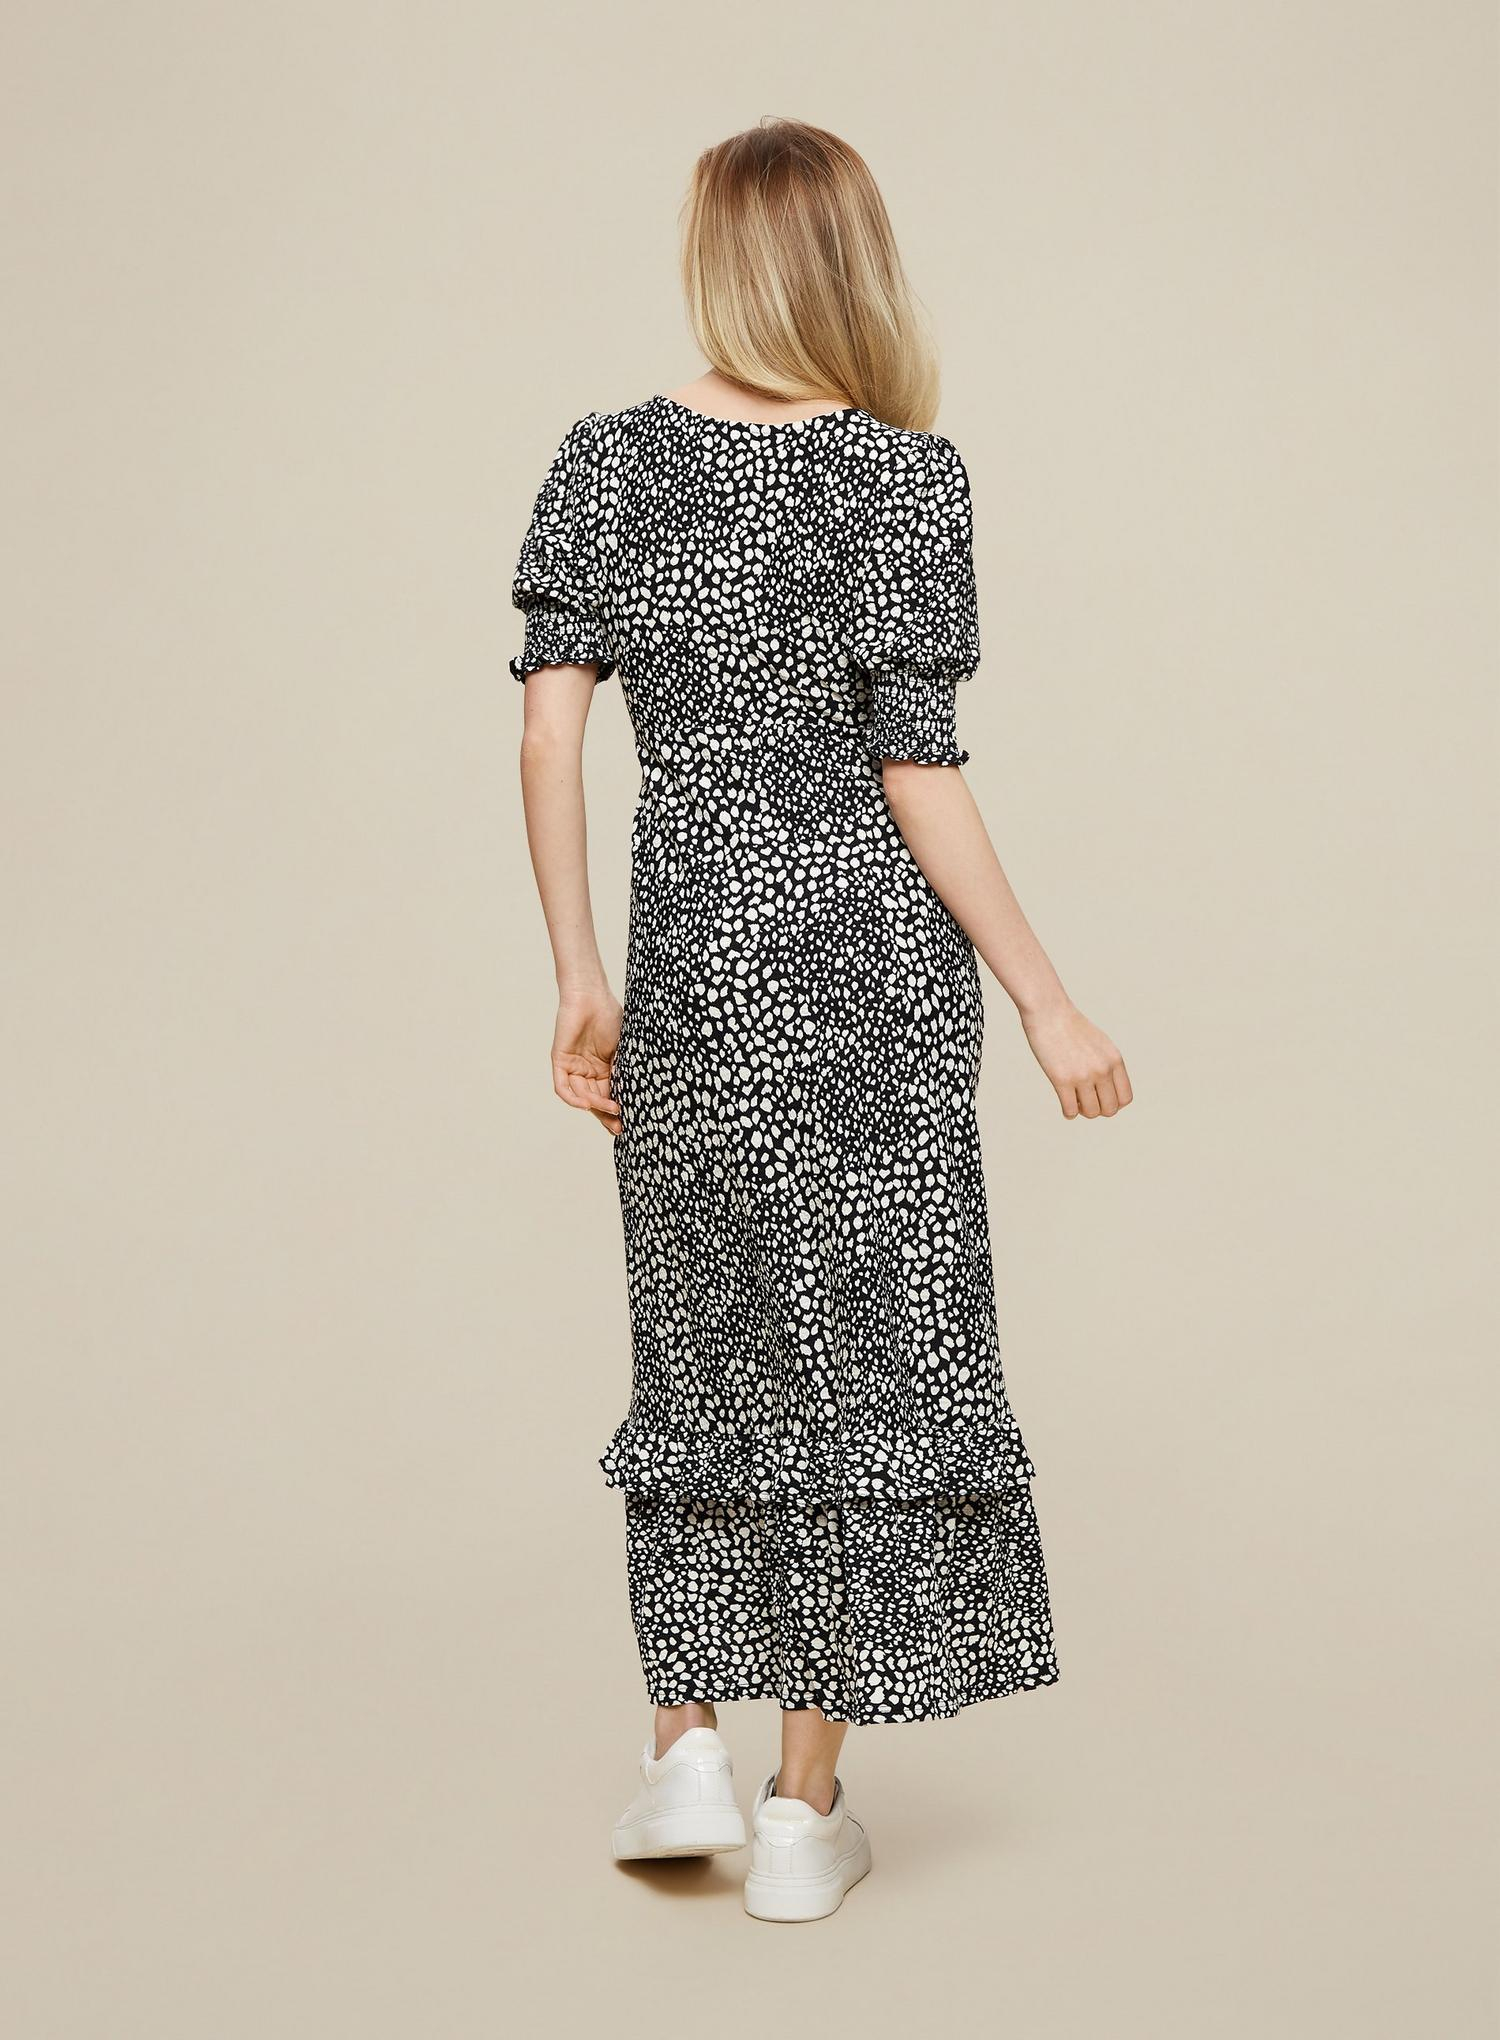 123 Neutral Leopard Print Midi Wrap Dress image number 2